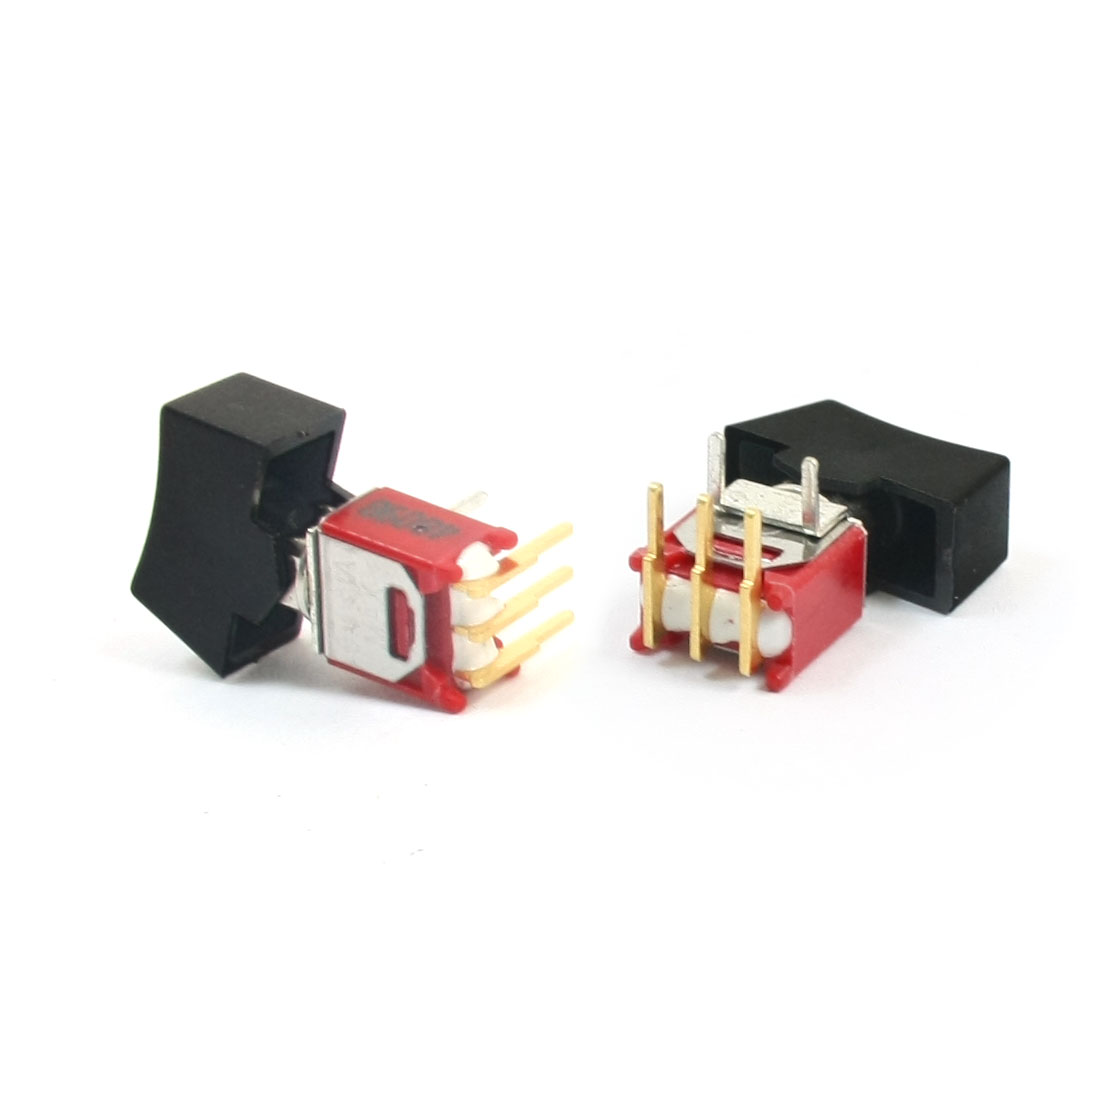 2Pcs 0.4VA 2 Position I/O 1P2T 3 Pole Toggle Switch w Black Cap